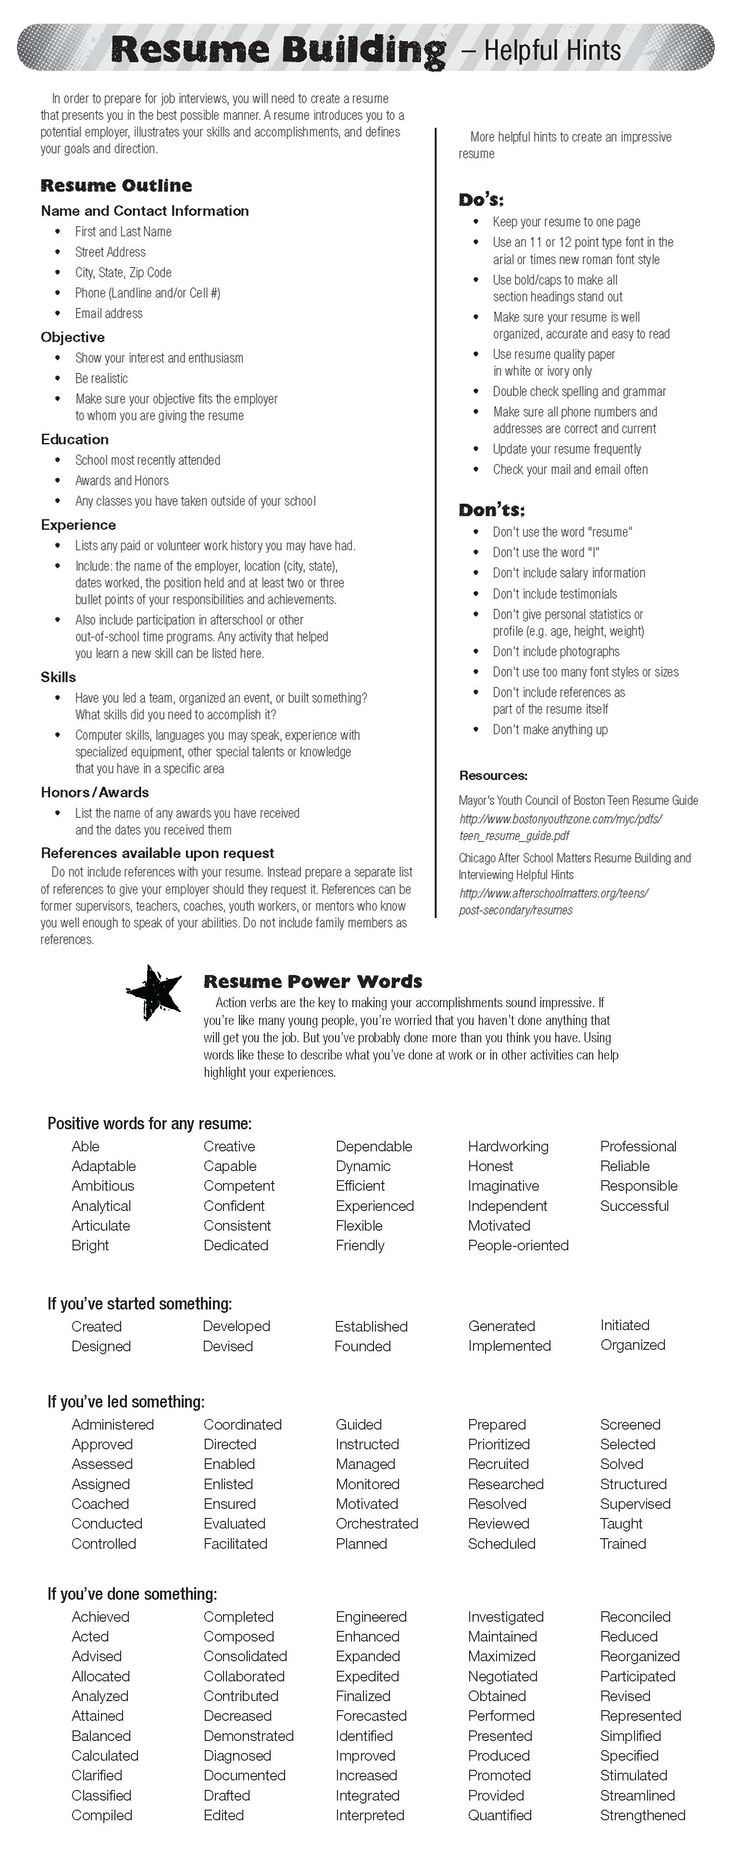 Picnictoimpeachus  Pretty  Ideas About Resume On Pinterest  Cv Format Resume Cv And  With Lovely  Ideas About Resume On Pinterest  Cv Format Resume Cv And Resume Templates With Delectable List References On Resume Also Free Resume Builder Template In Addition Resume Current Job And Financial Analyst Resume Example As Well As How To Create A Resume On Word  Additionally Resume Templates For Openoffice From Pinterestcom With Picnictoimpeachus  Lovely  Ideas About Resume On Pinterest  Cv Format Resume Cv And  With Delectable  Ideas About Resume On Pinterest  Cv Format Resume Cv And Resume Templates And Pretty List References On Resume Also Free Resume Builder Template In Addition Resume Current Job From Pinterestcom